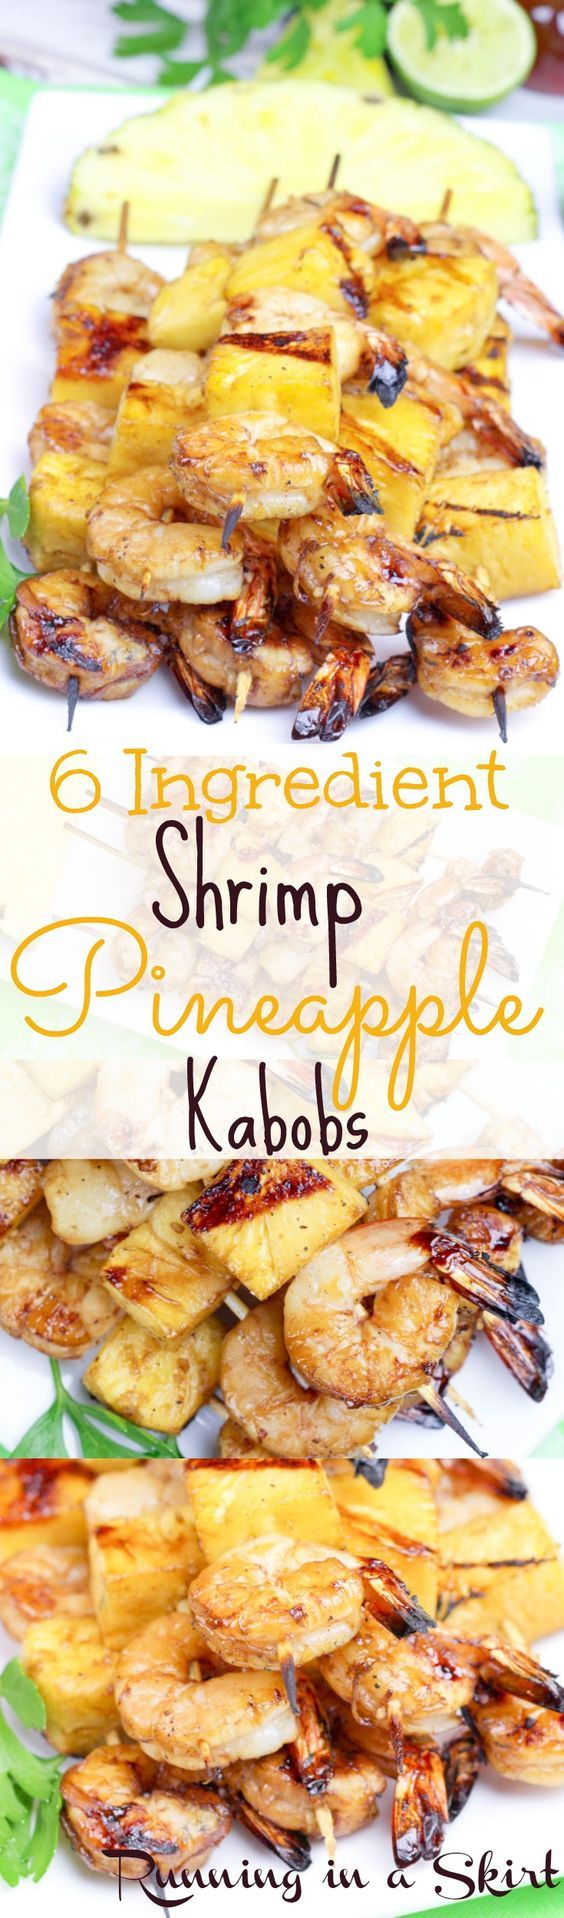 Shrimp Pineapple Kabobs - clean eating grilling recipe! Only 6 ingredients!   Running in a Skirt